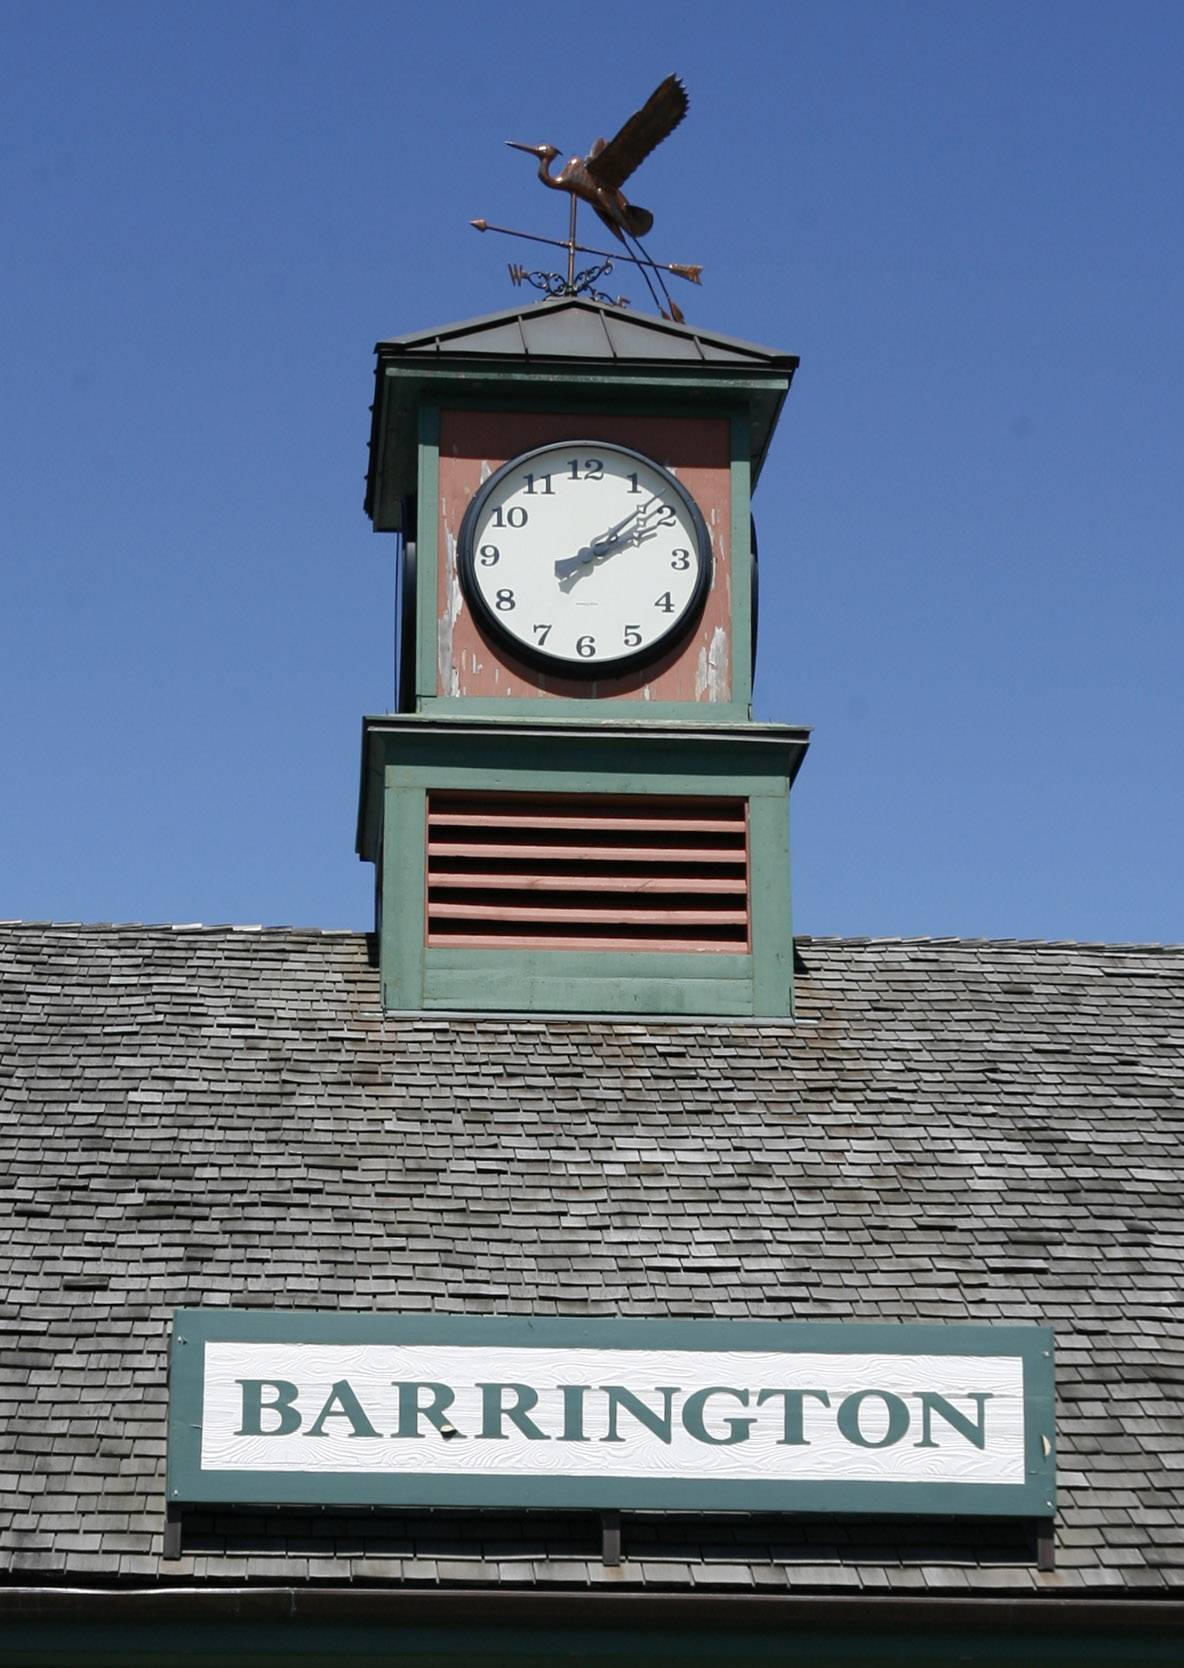 Illinois sends local governments 6 percent of the income taxes it collects, but because payments are per capita, places like Barrington get back less than 2 percent of what workers there paid.